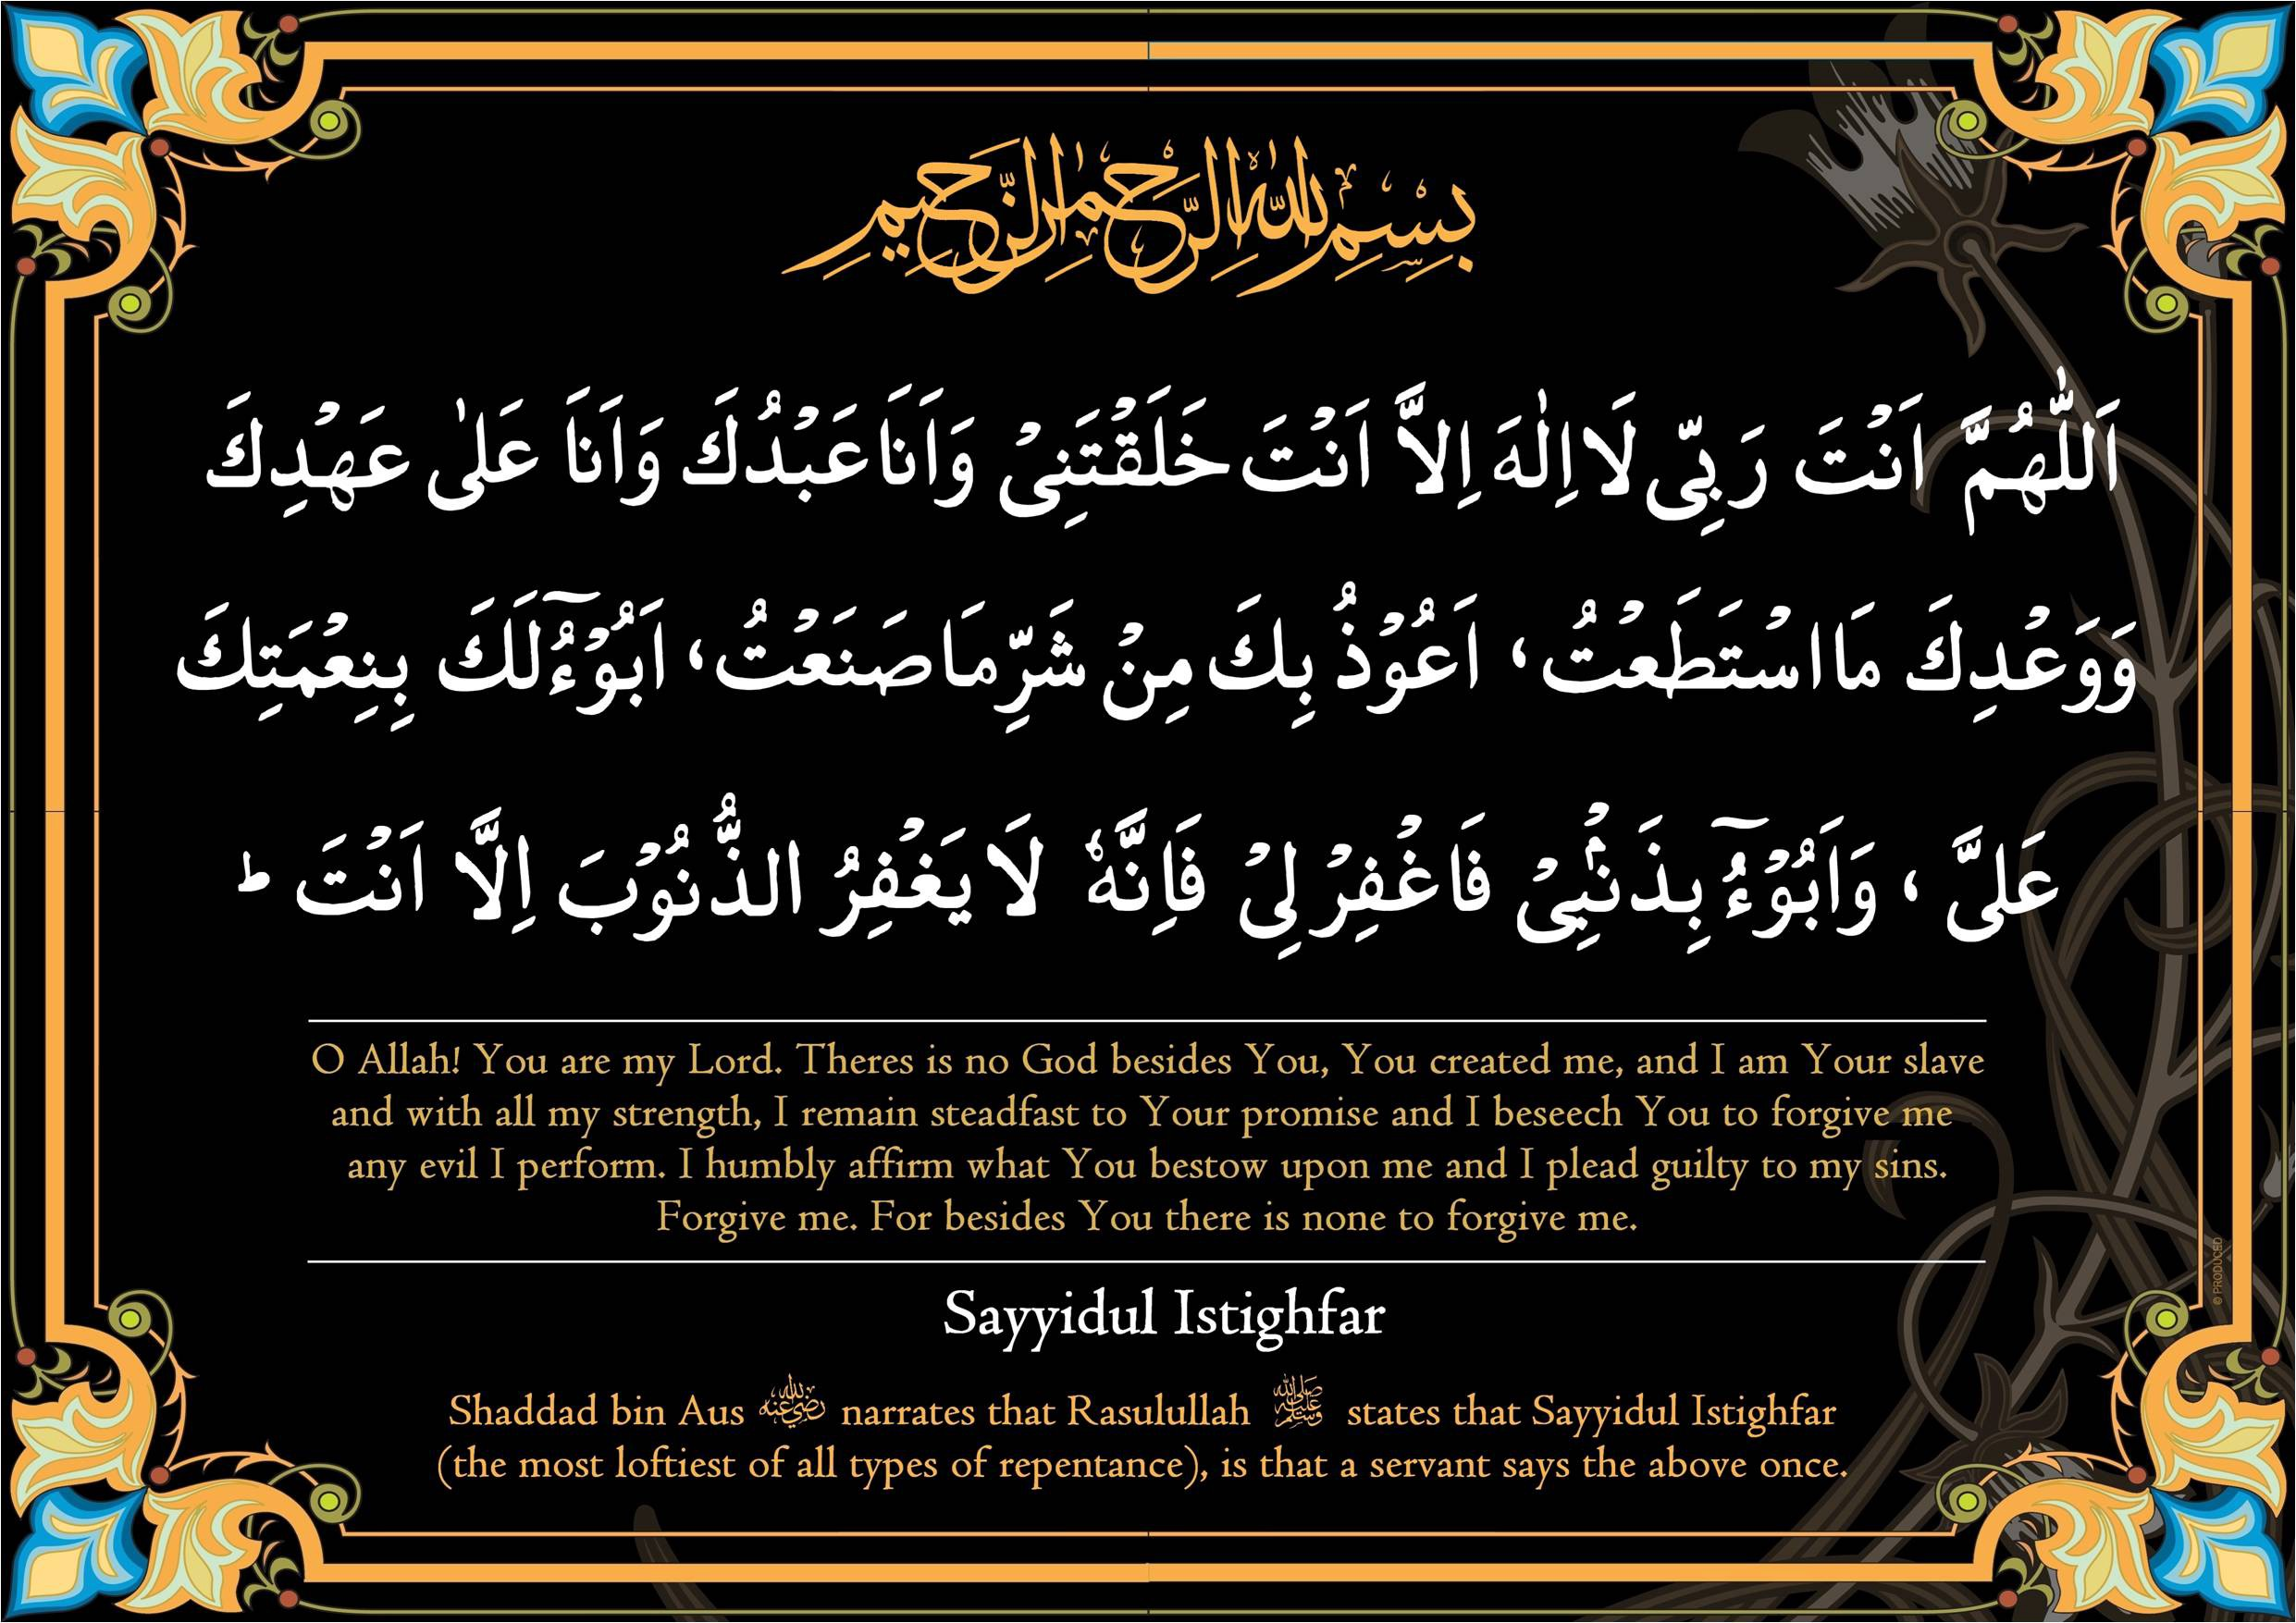 Sayyidul Istighfar The Best Method Of Asking Allah For